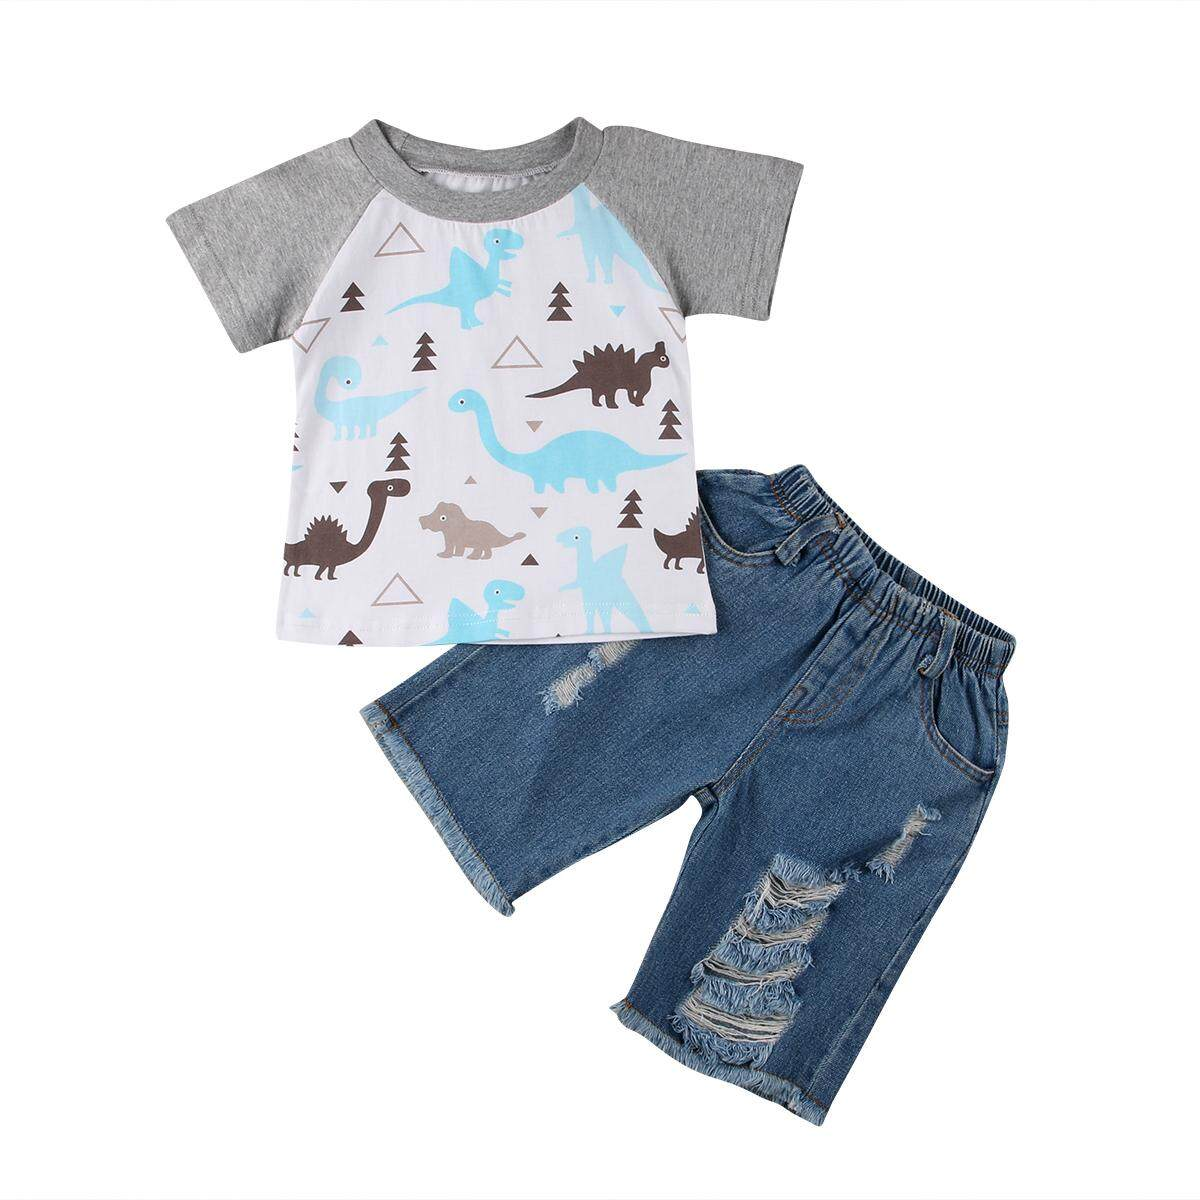 943b192c3 Clothing Set for Baby Boys for sale - Baby Boys Clothing Set online ...